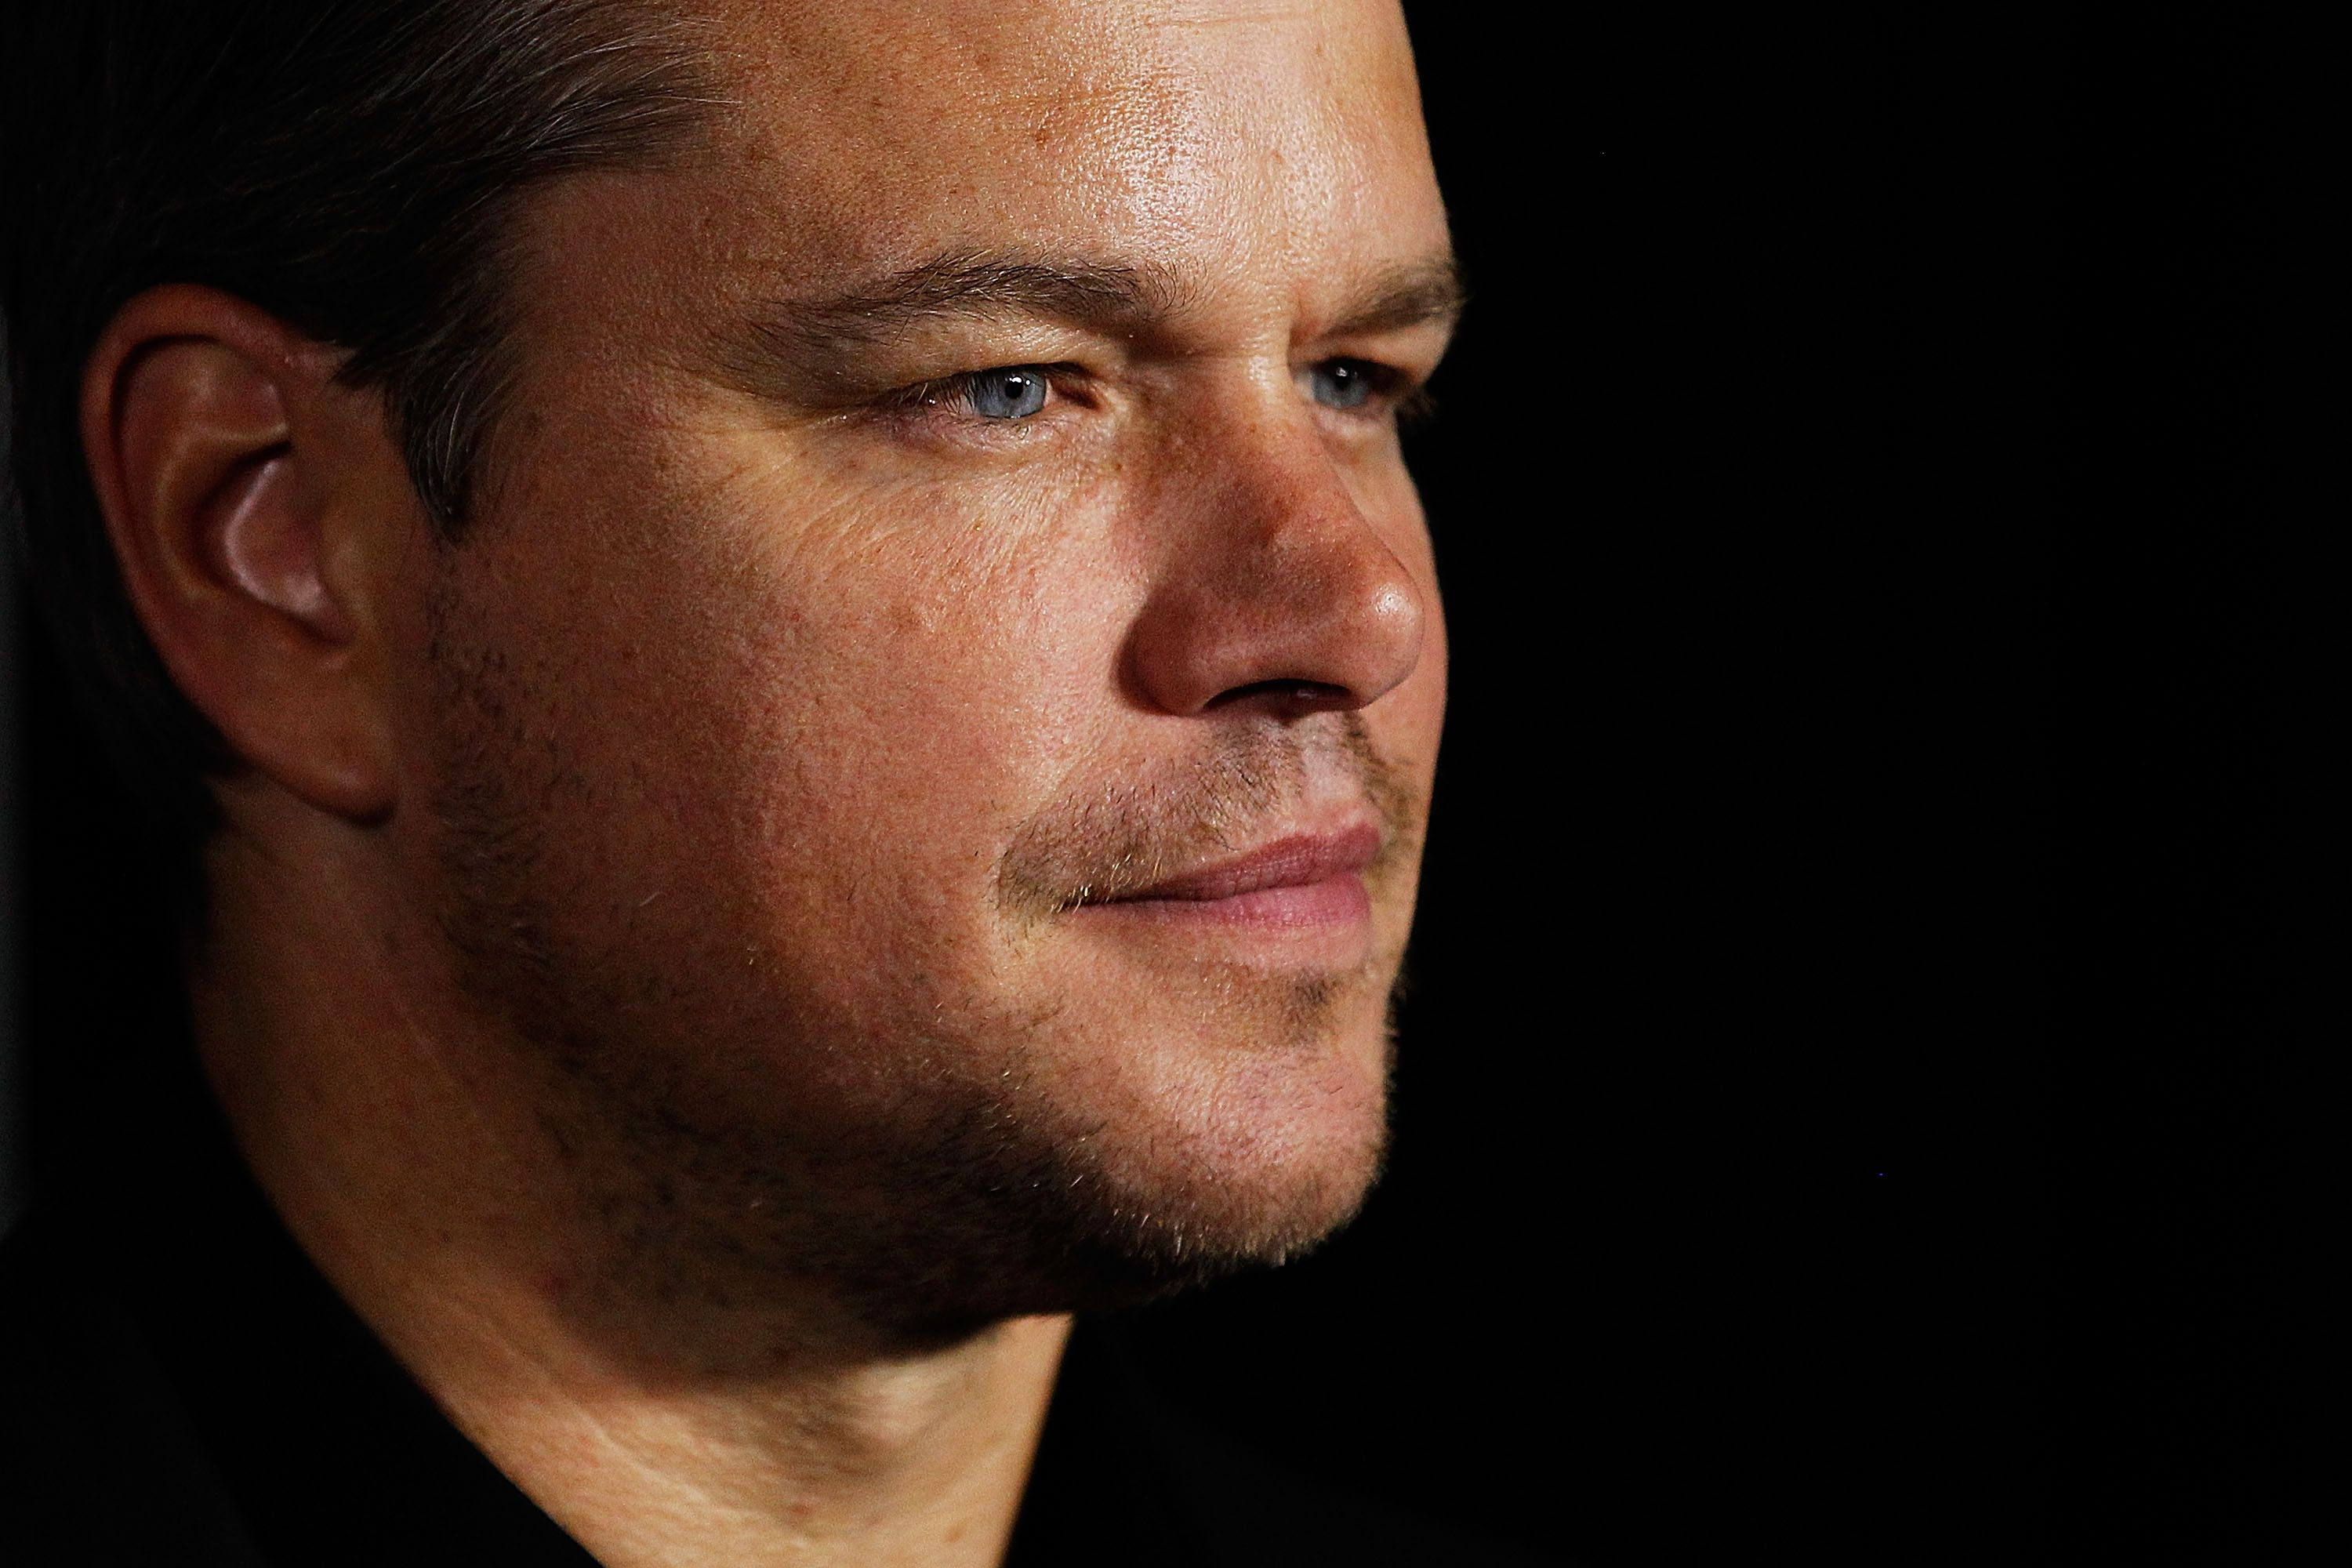 Matt Damon's doppelgänger from the past has officially freaked us out